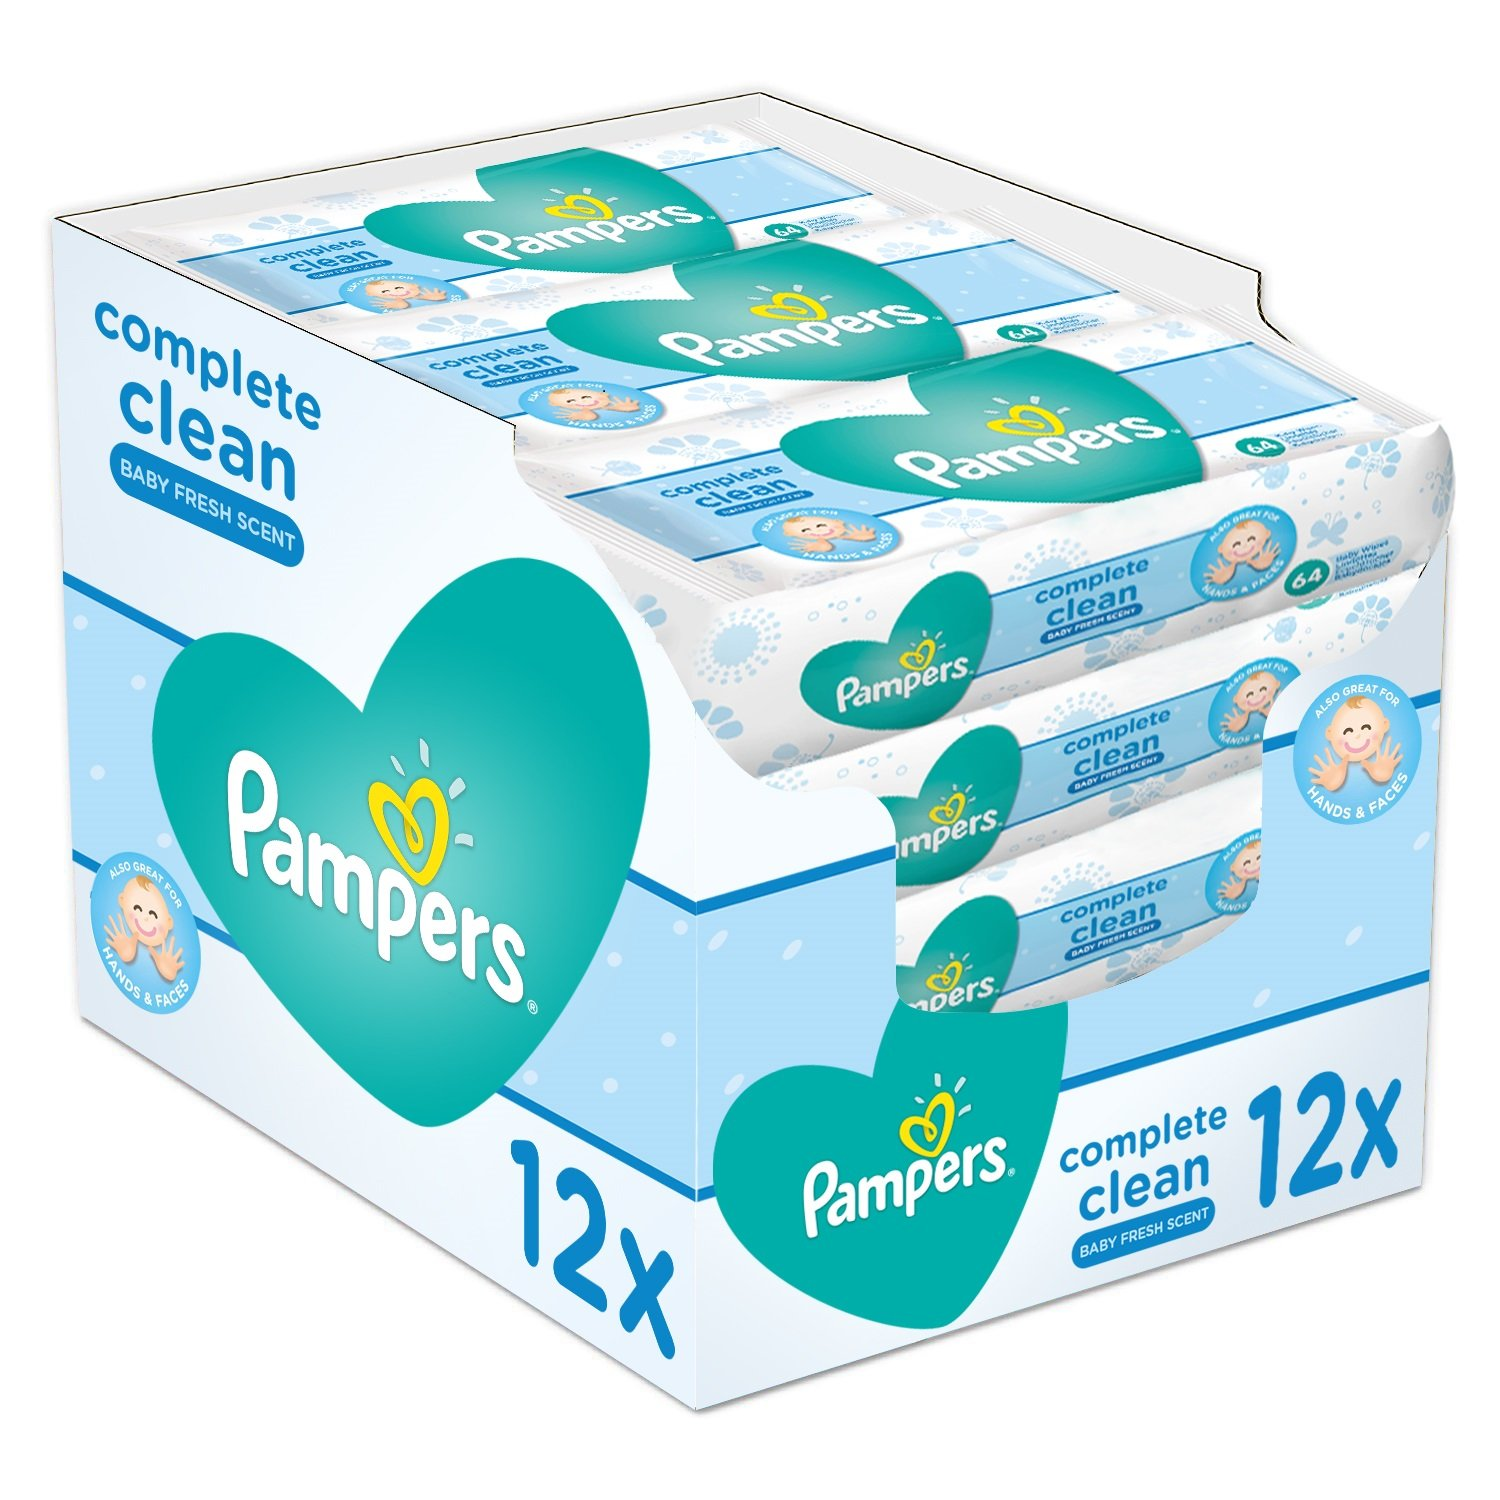 Pampers Complete Clean Baby Wipes, Baby Fresh Scent, 64 Wipes x 12 Procter & Gamble 81441962